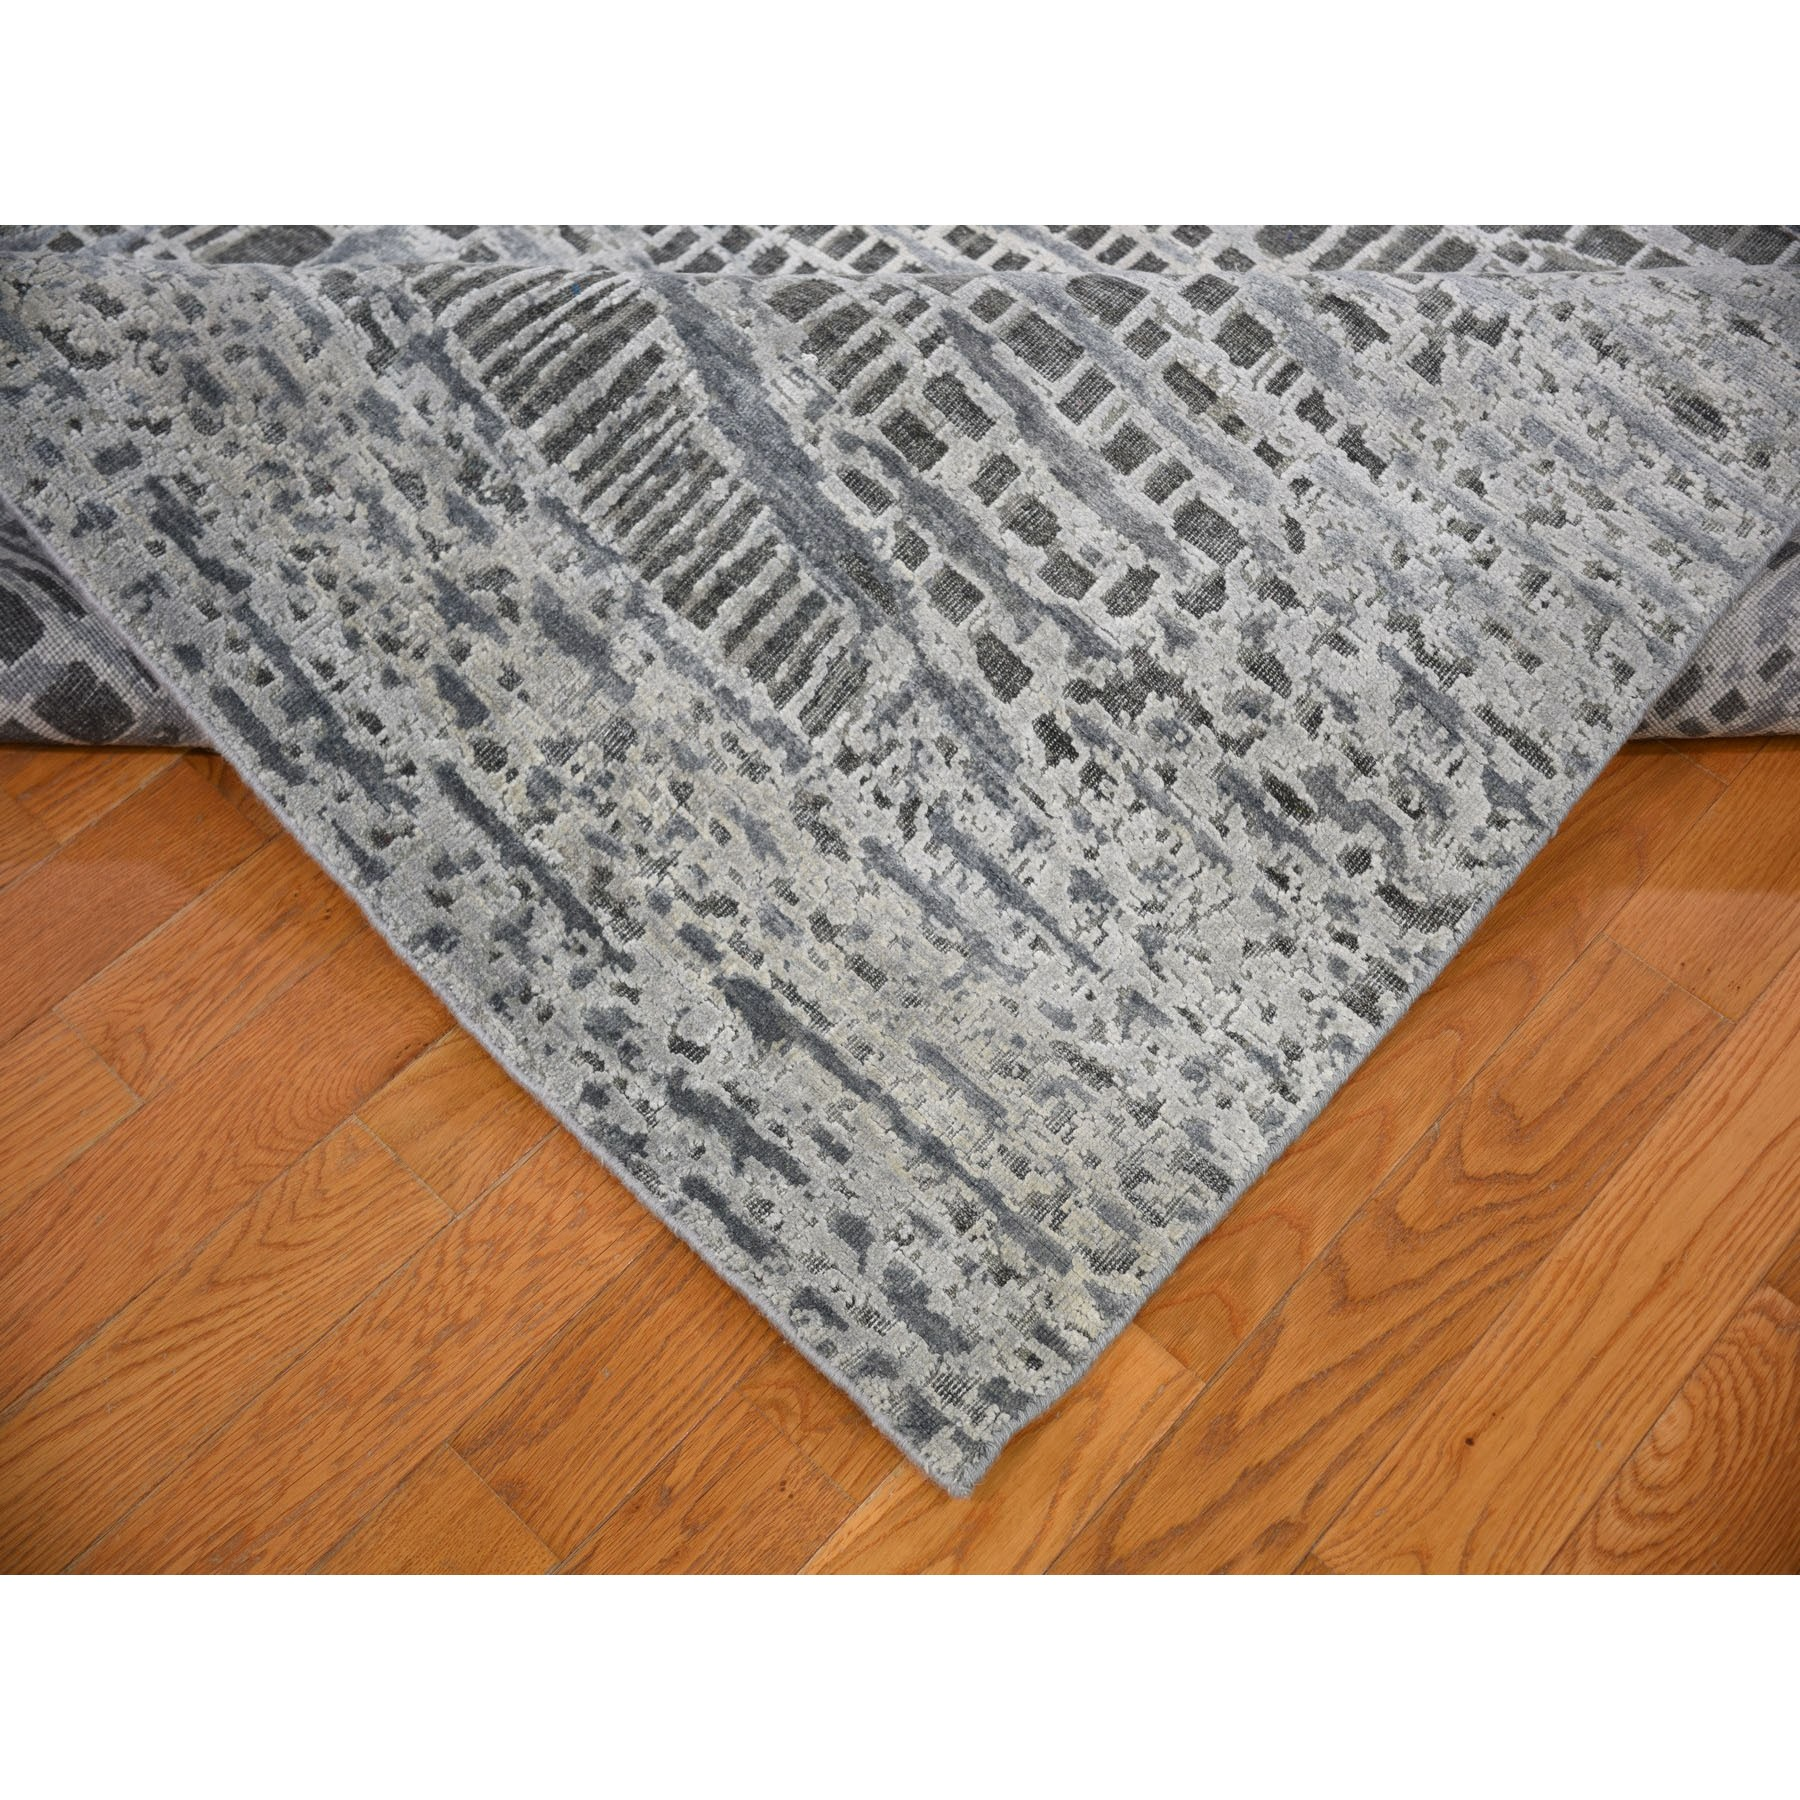 8-10 x12-2  THE LOST BRANCHES, Silk With Textured Wool Hand Knotted Oriental Rug